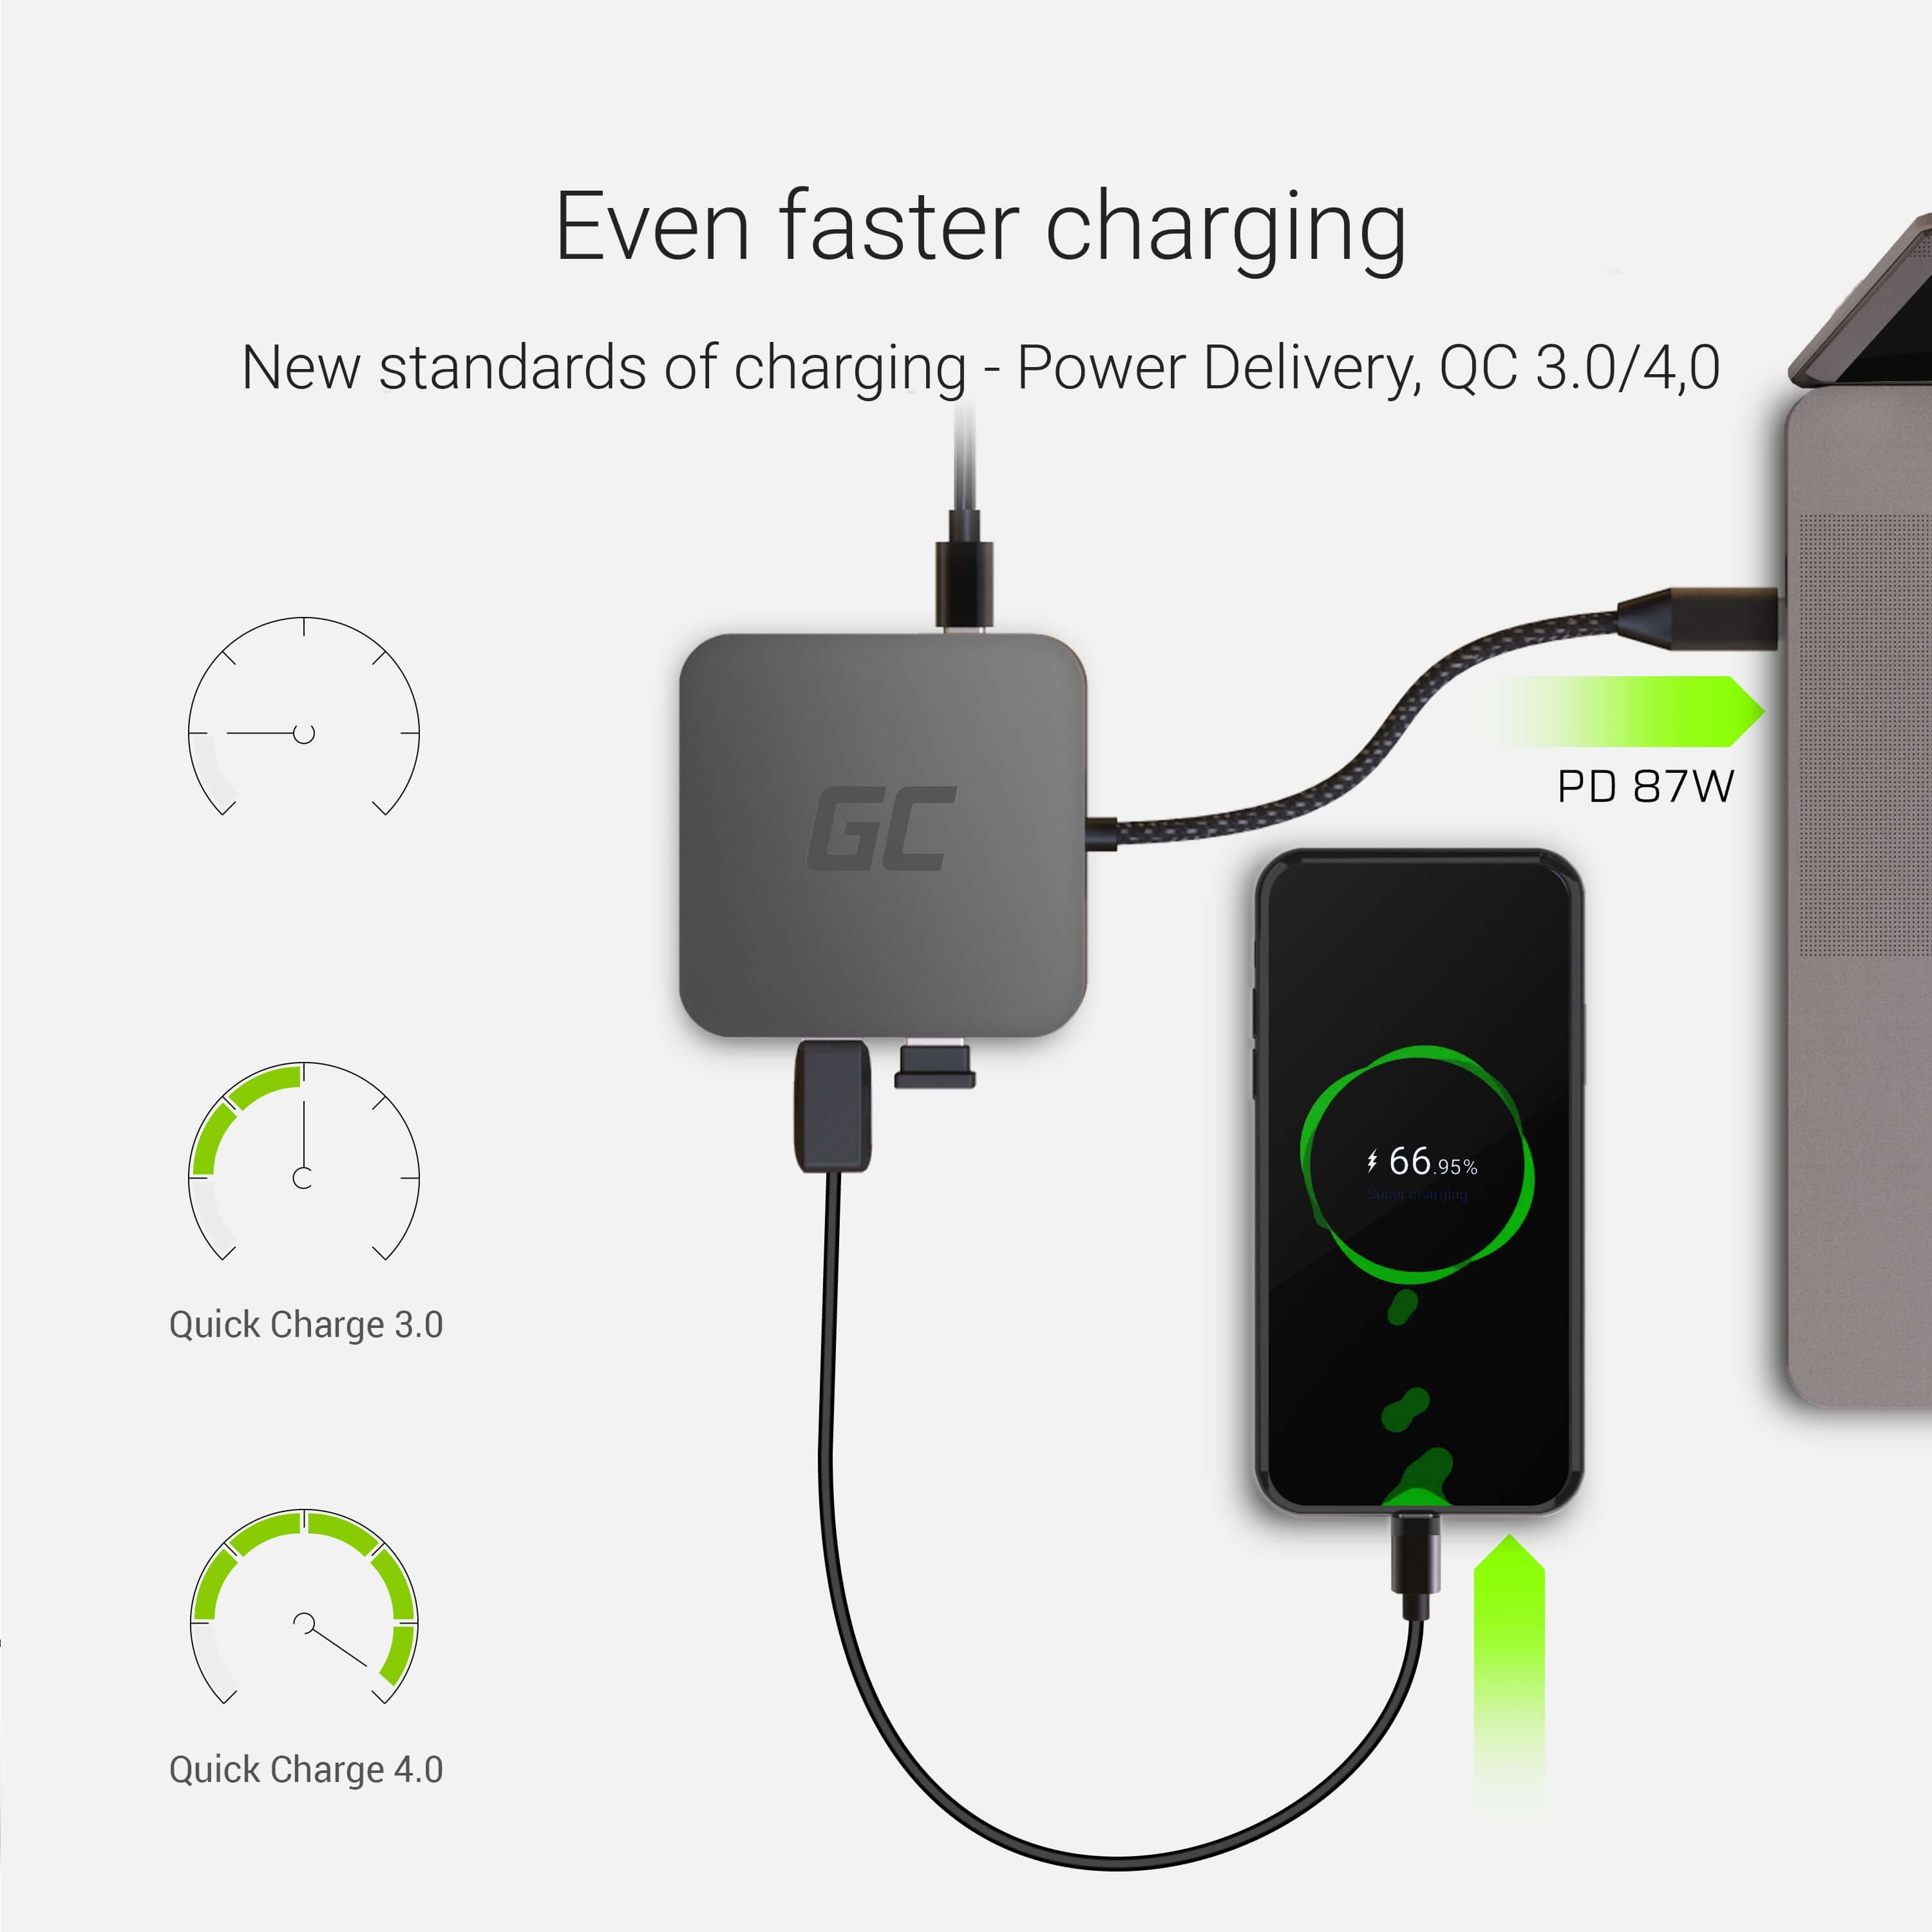 Docking Station HUB USB-C Green Cell 6in1 (USB 3.0 HDMI Ethernet USB-C) for Apple MacBook, Dell XPS, Asus ZenBook and others